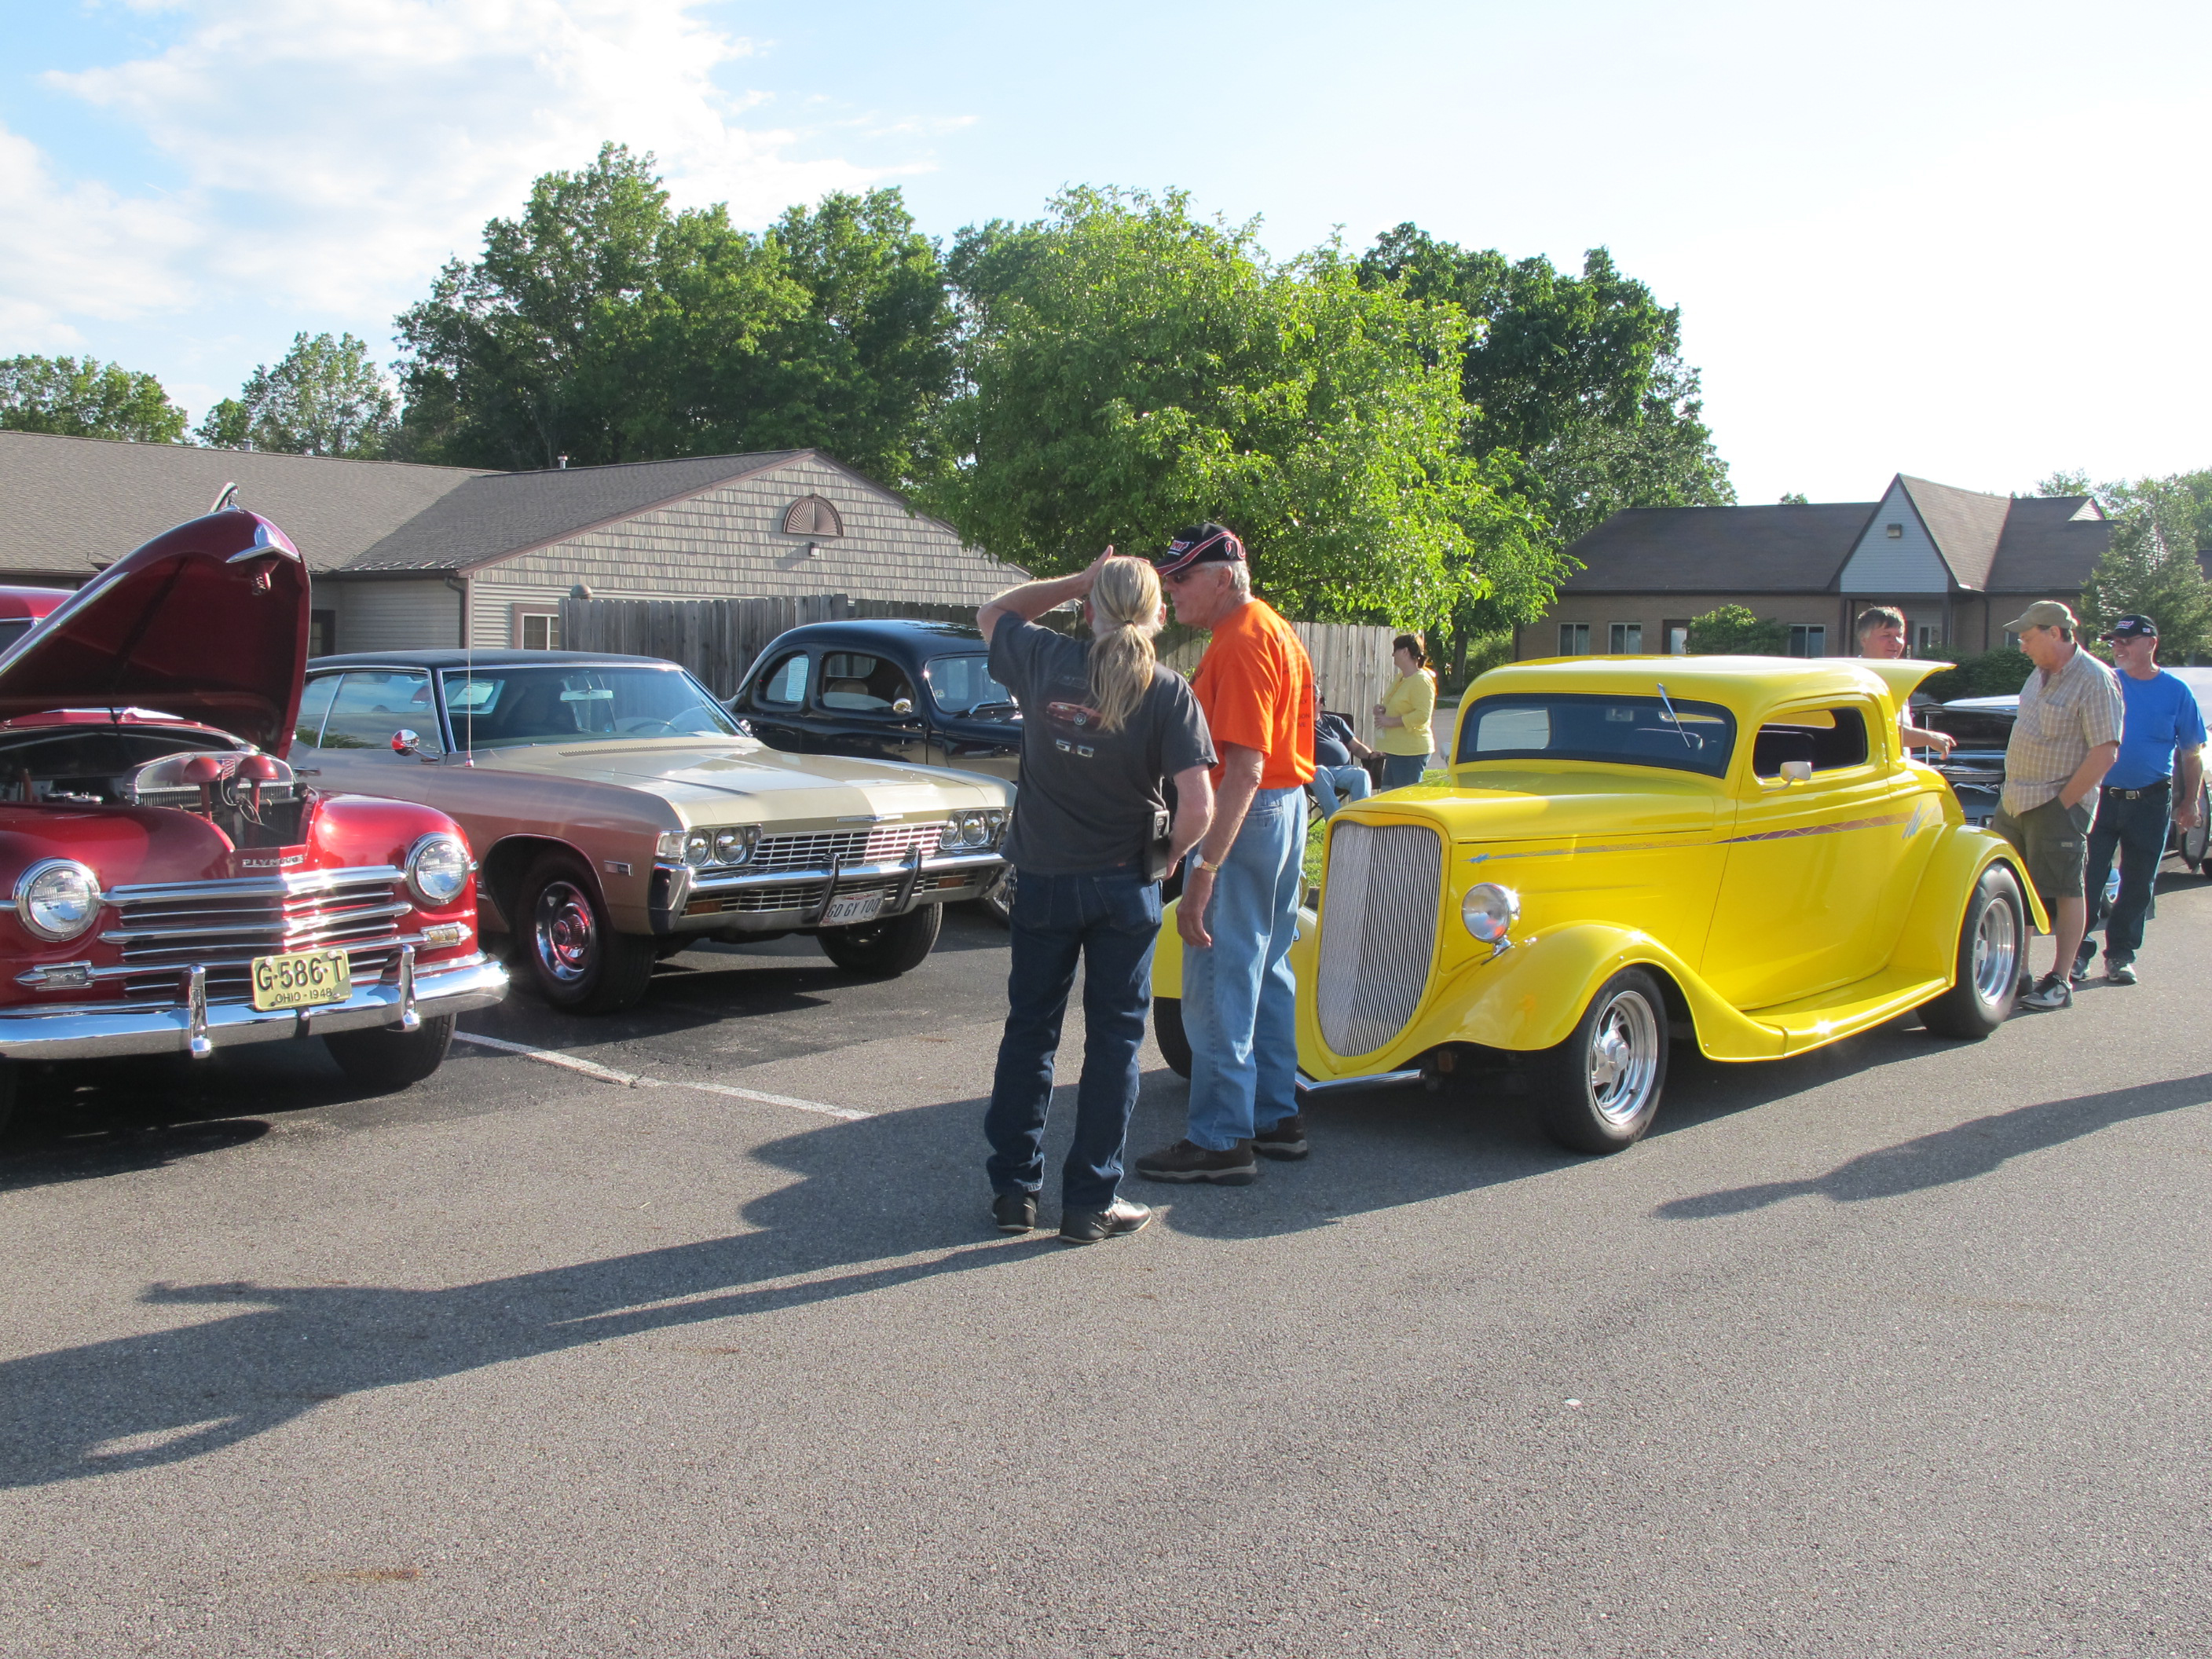 Cruise nights bring interest in cars to community | vindy.com